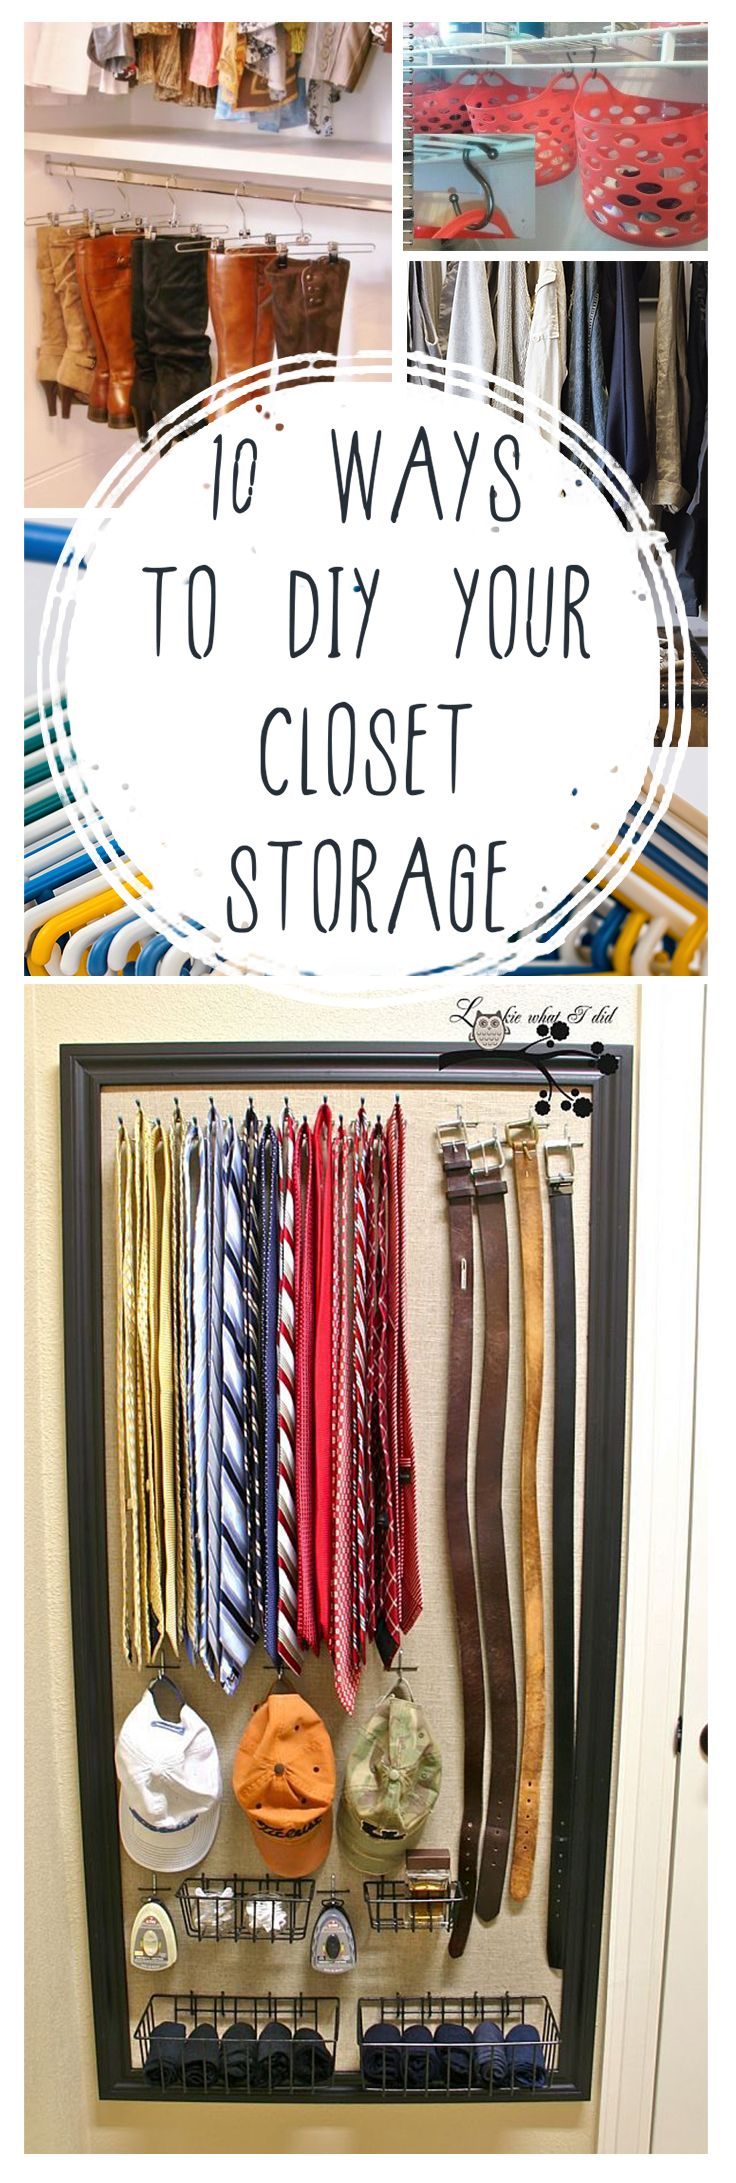 Closet storage, easy closet storage, closet organization, popular pin, DIY organization, organized home, home organization, get organized, stay organized.